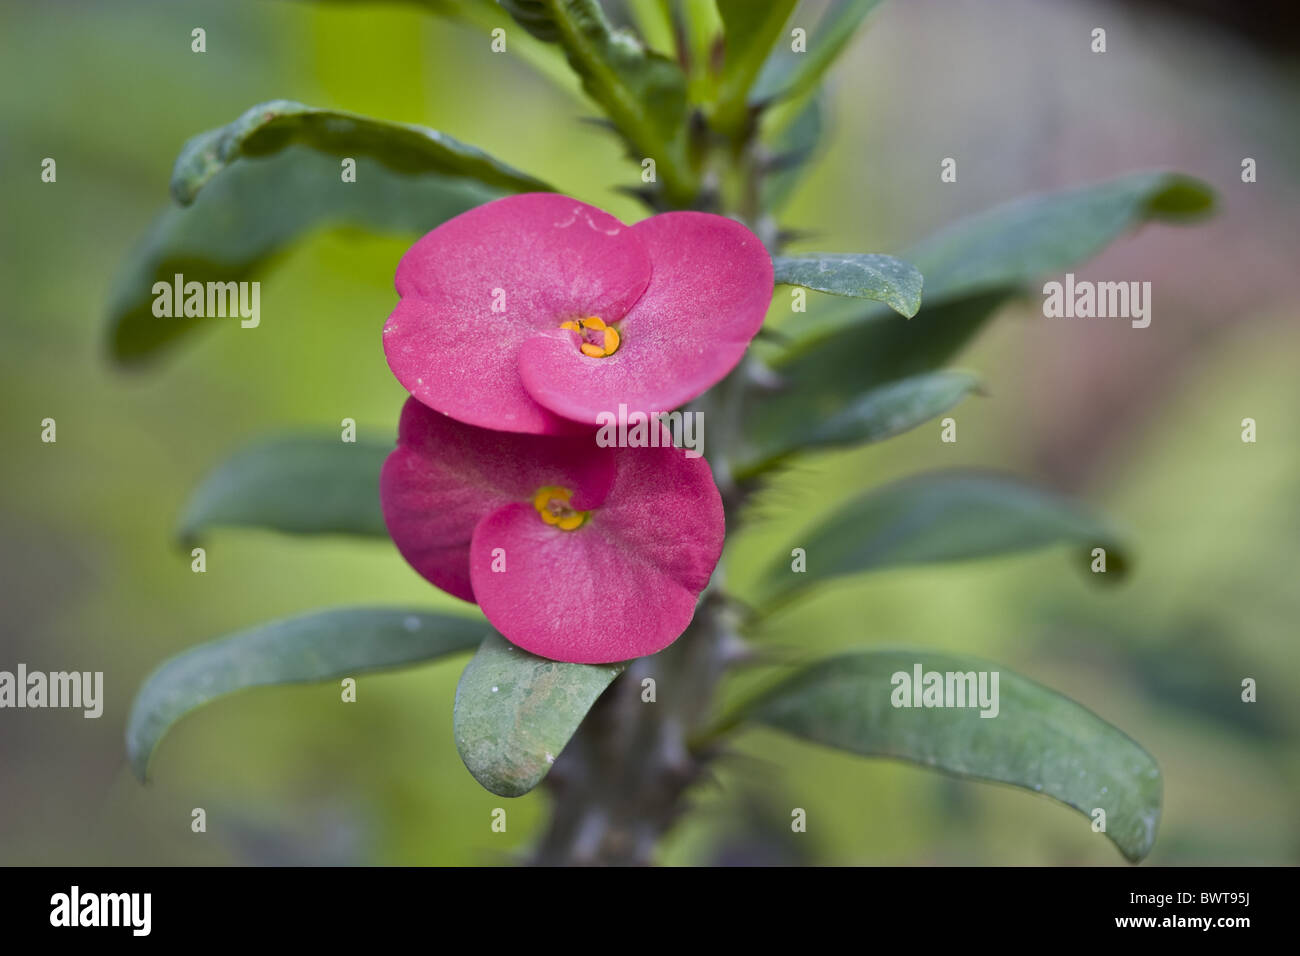 Tropical Plants With Thorns Stock Photos Tropical Plants With